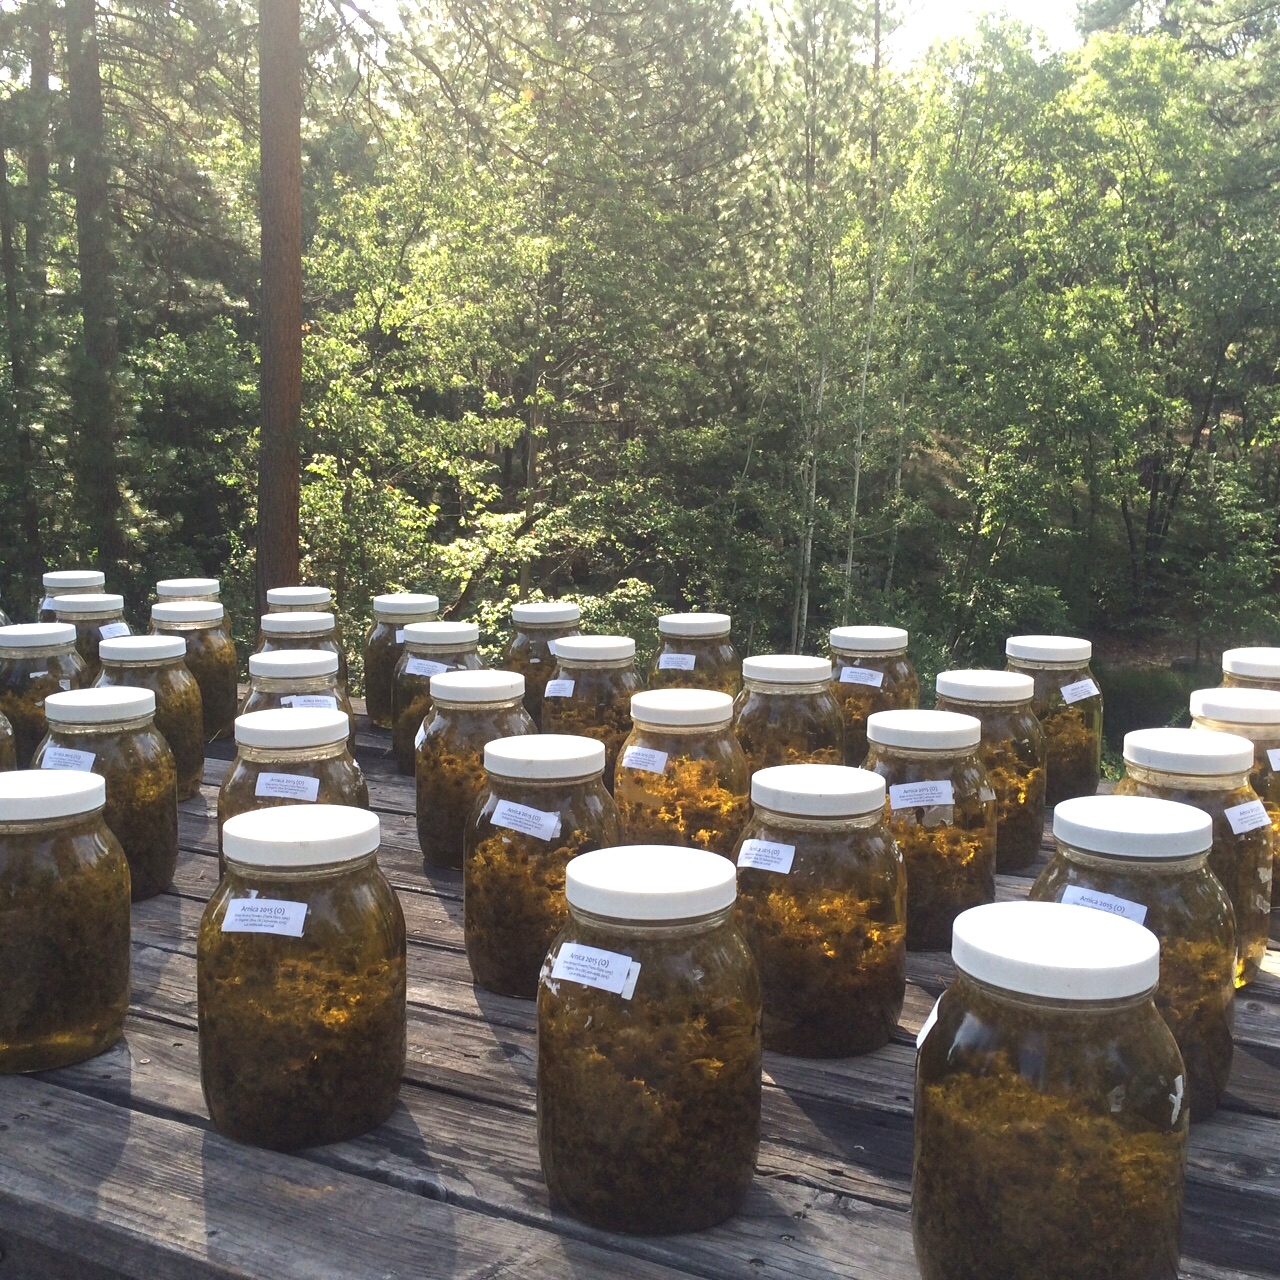 Arnica oil infusing in the sun